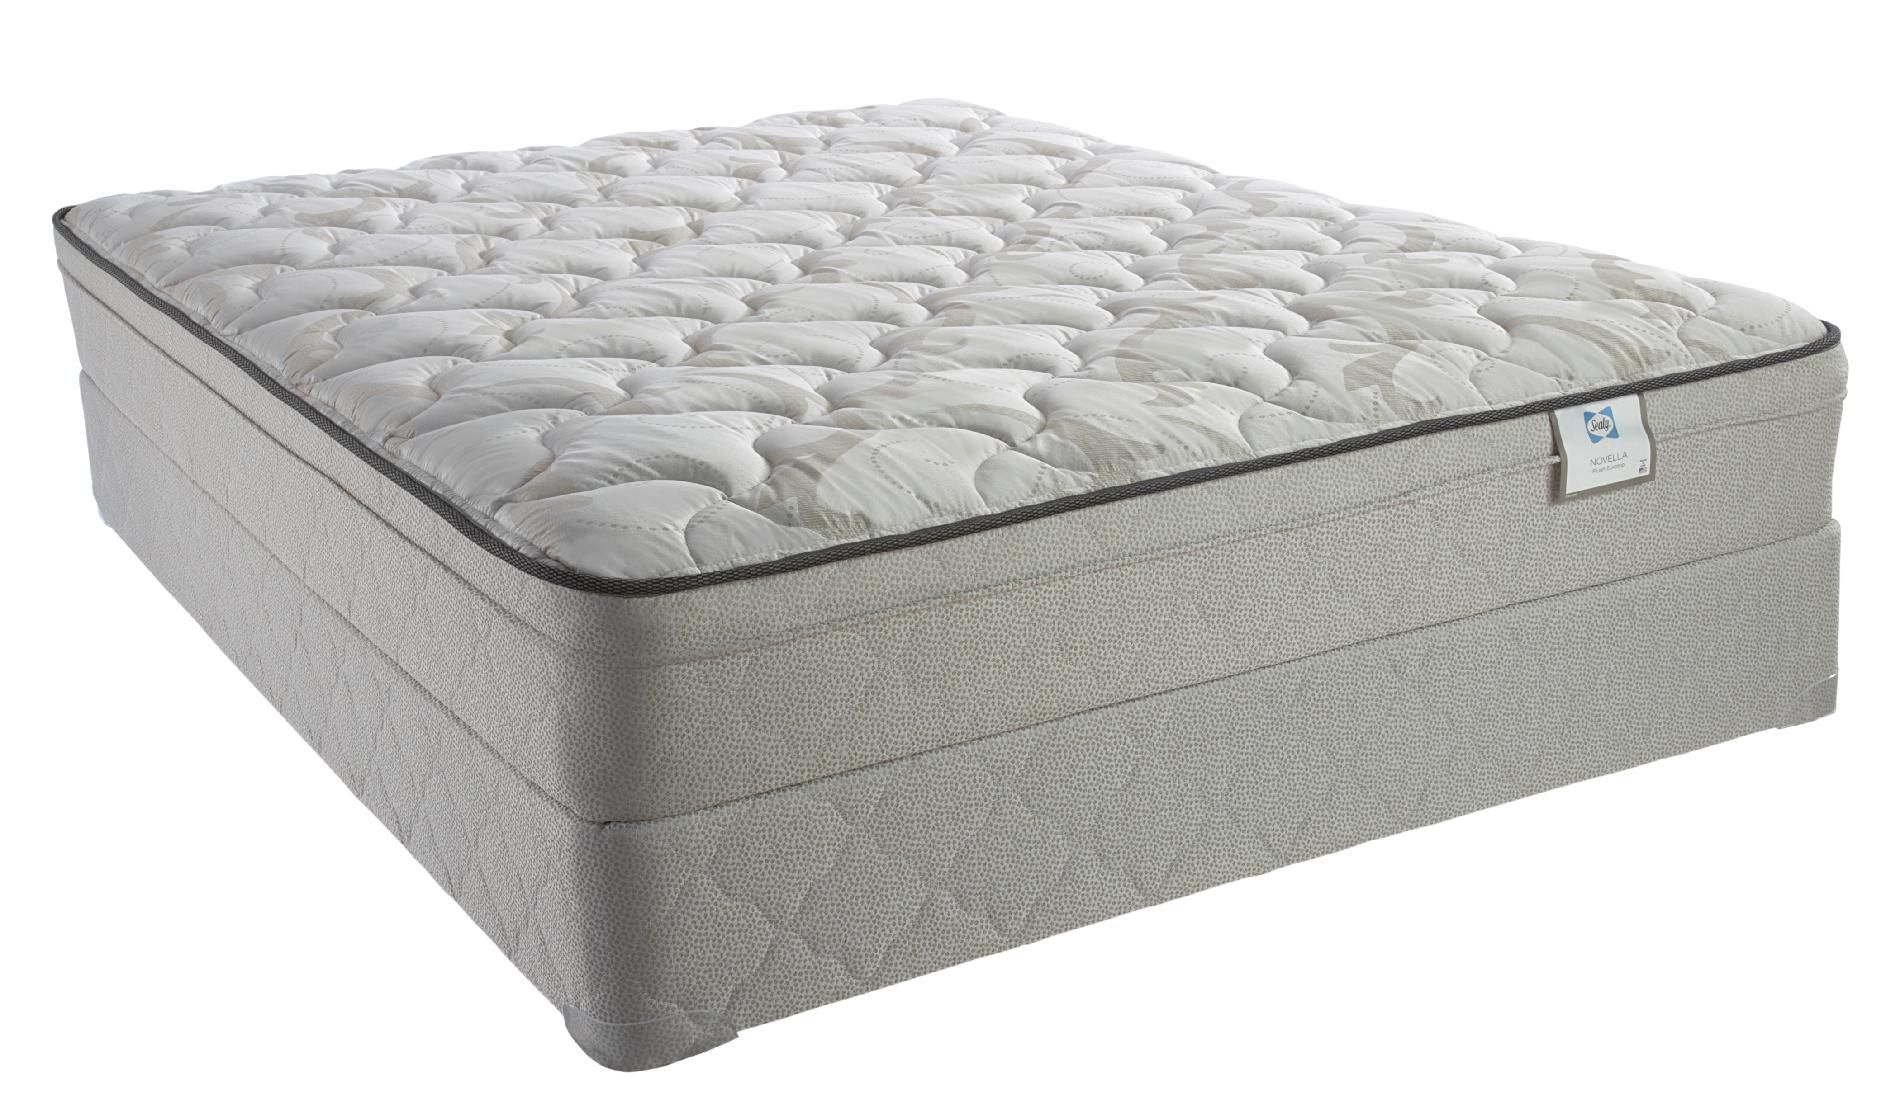 Mattresses Sale Mattress Box Spring And Bedframe Queen King Twin And Full